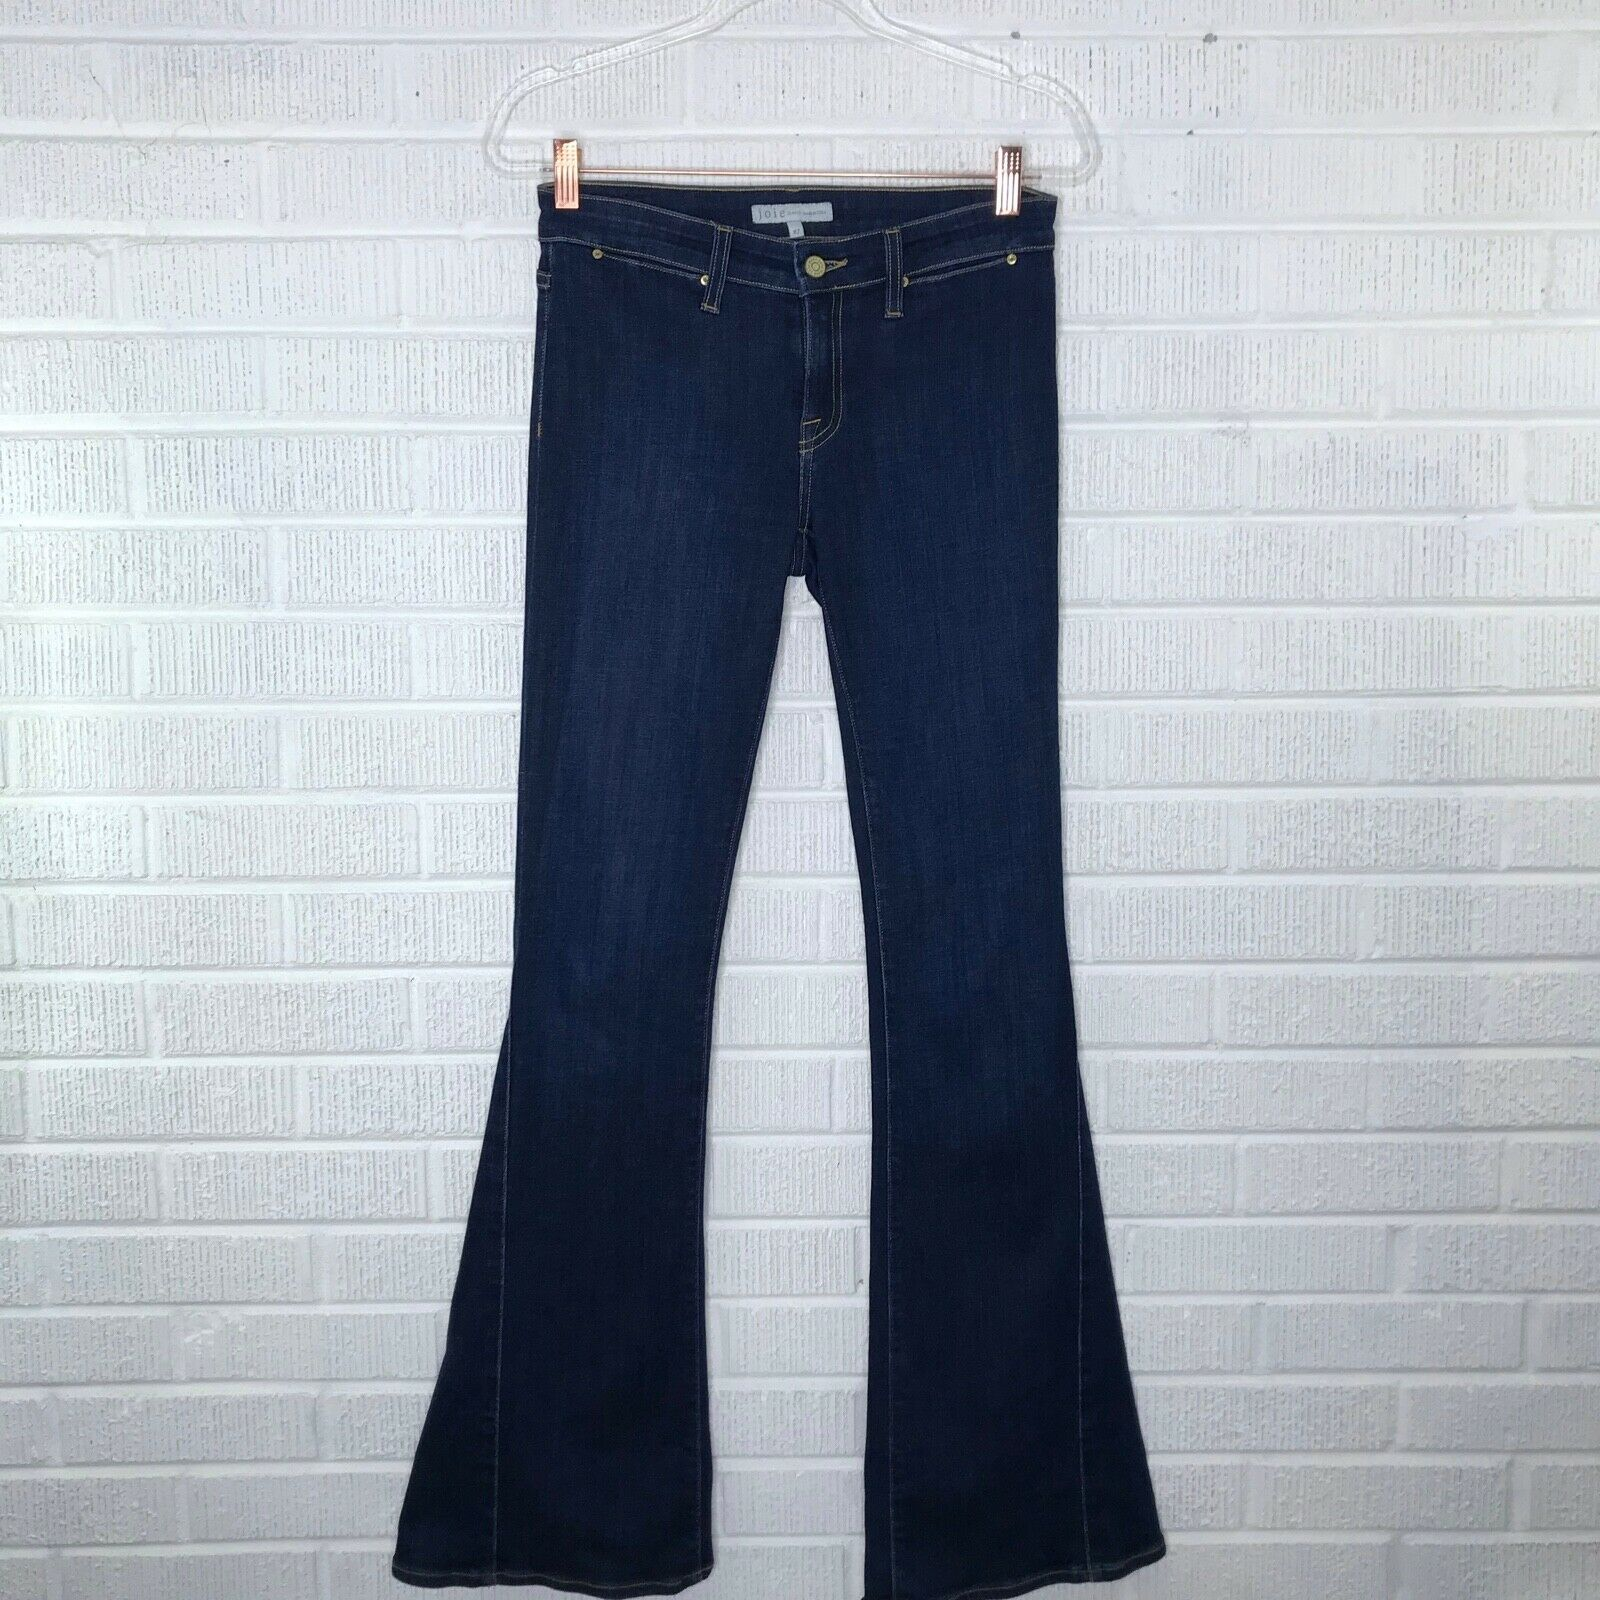 New Joie Size 27 Mid Rise Flare Jeans in Ravine Dark Wash Cotton Stretch